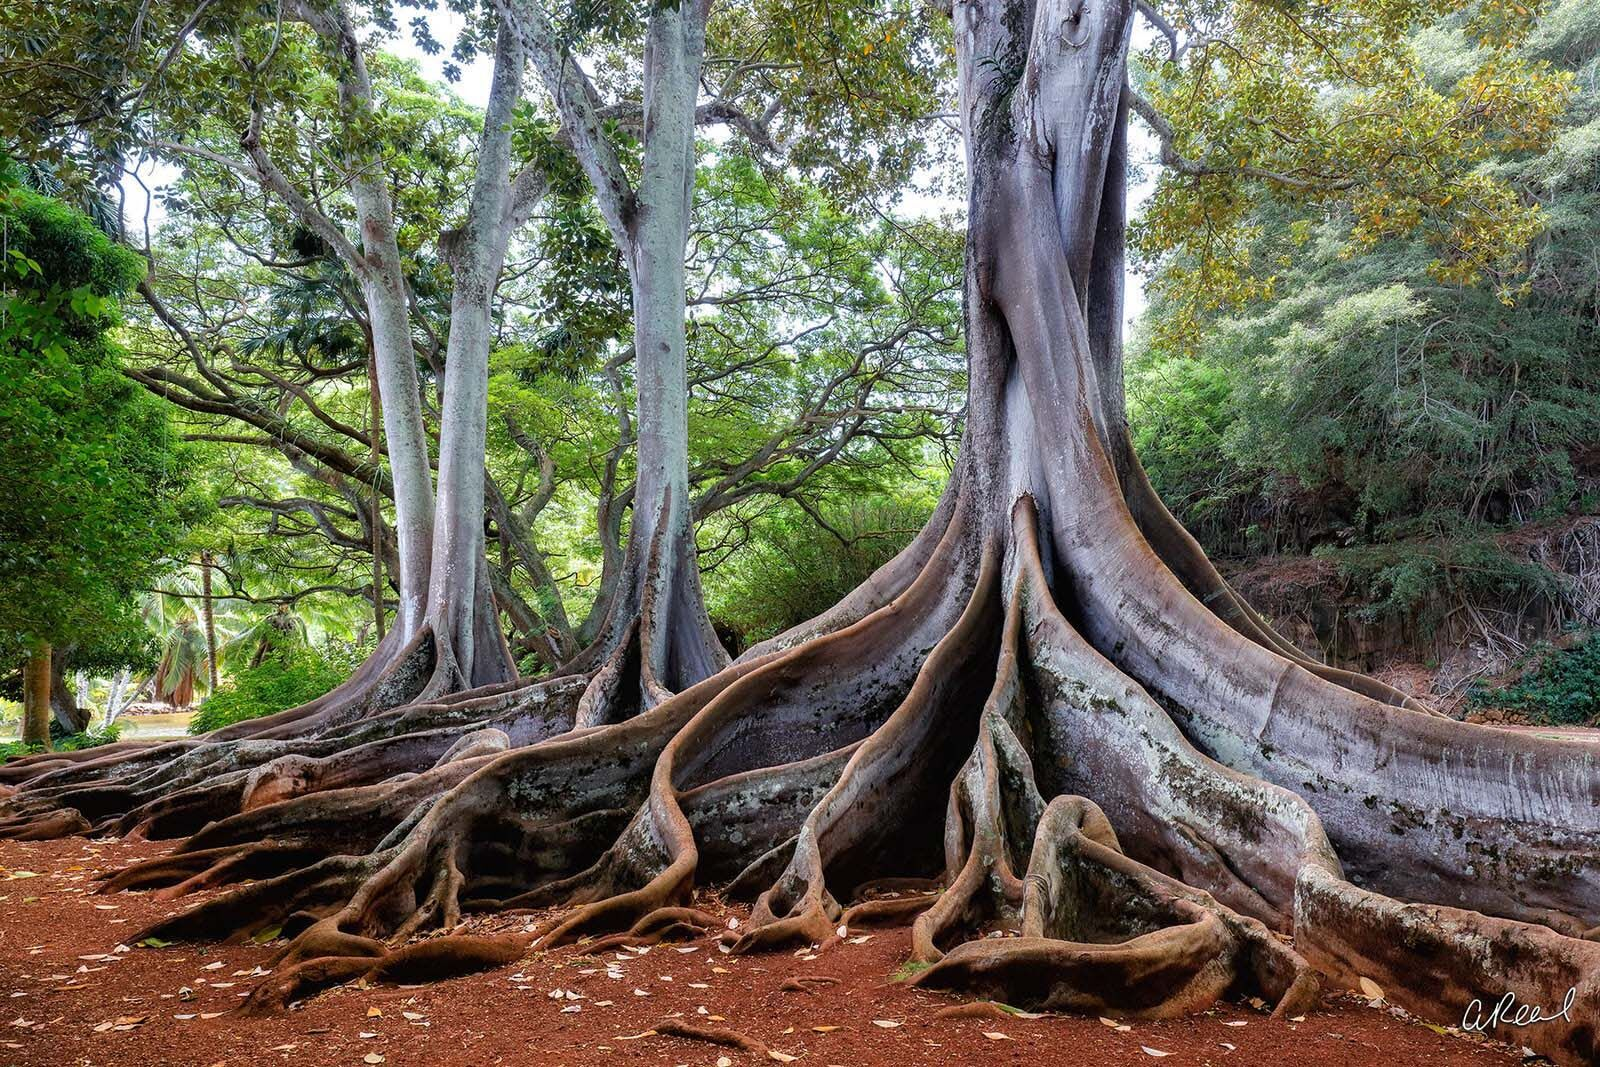 A photograph of a tree in Hawaii with large visible root systems above grown and green leaves.